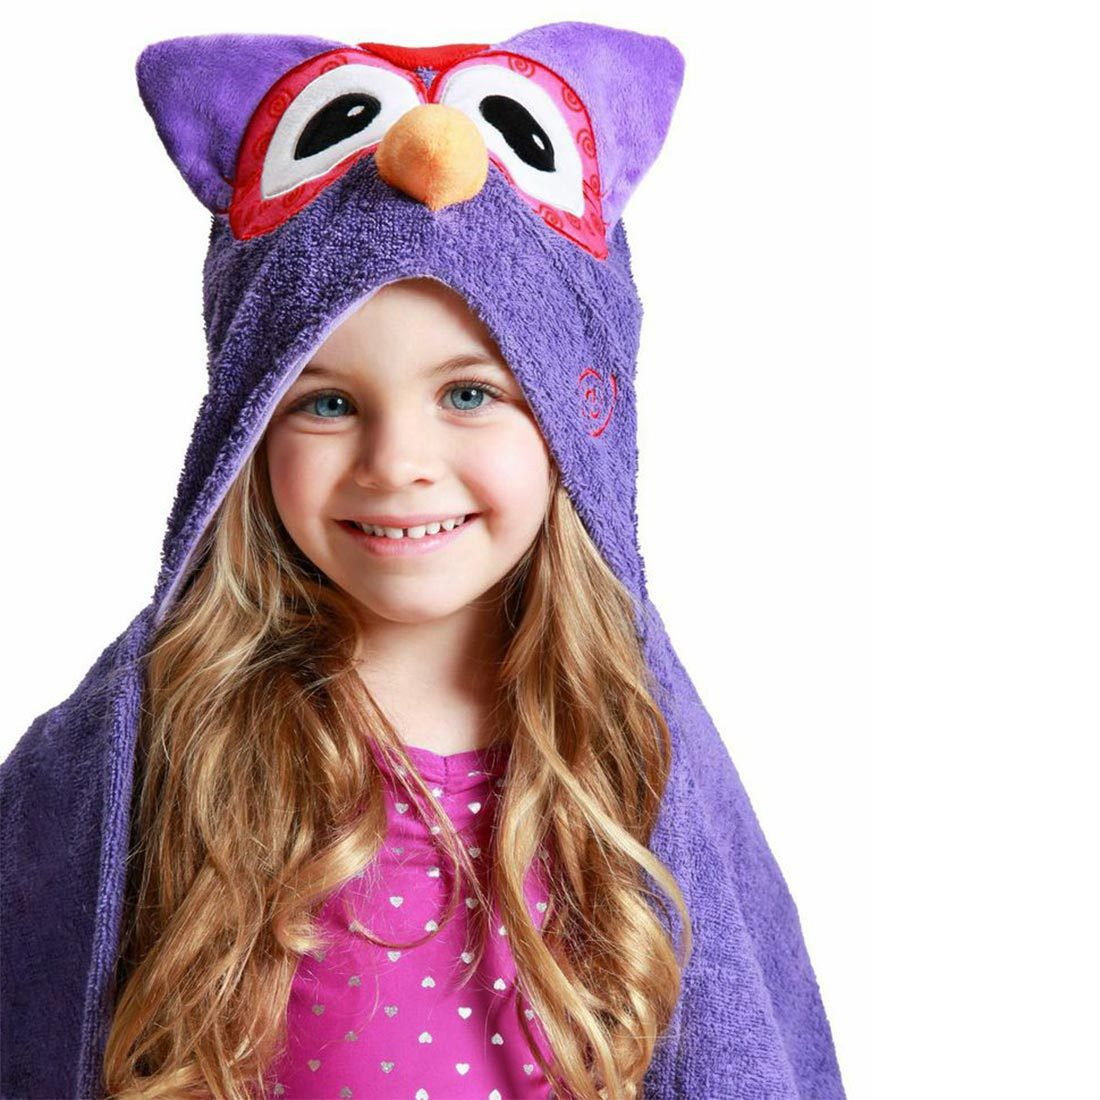 ZOOCCHINI Kids Plush Terry Hooded Bath Towel - Olive the Owl